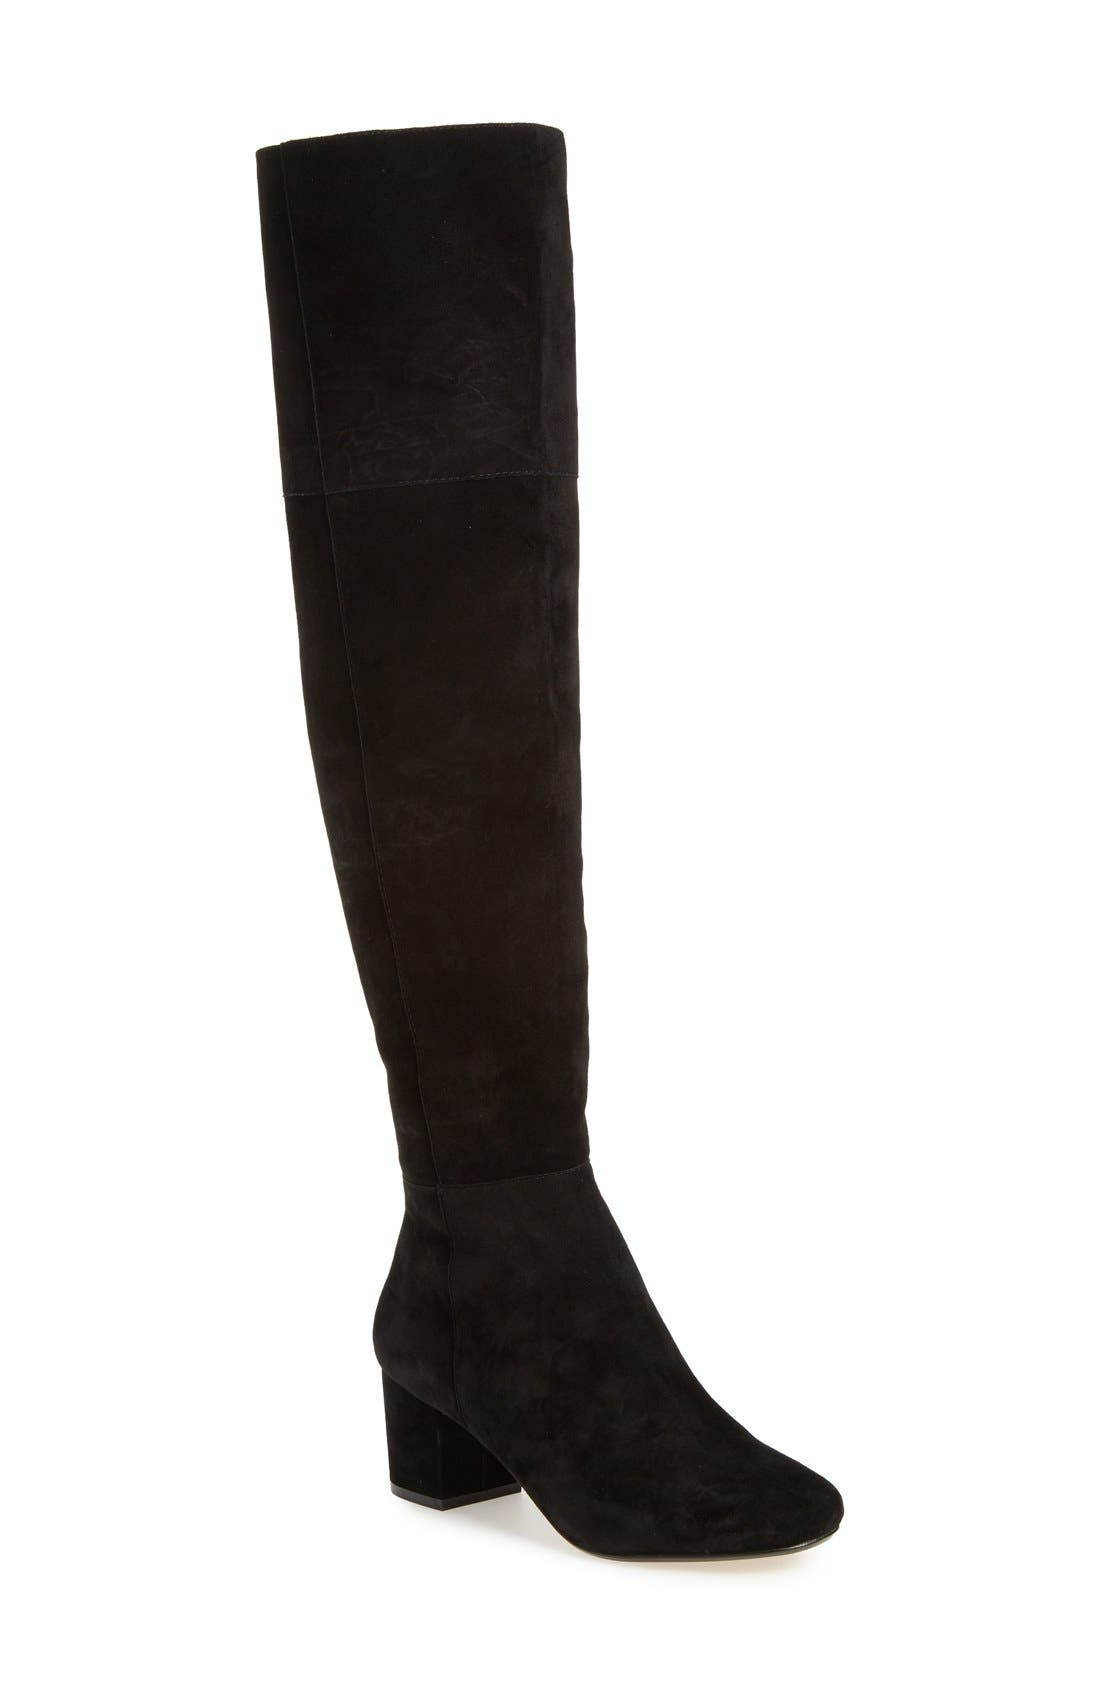 Alternate Image 1 Selected - Dune London 'Sanford' Tall Boot (Women)